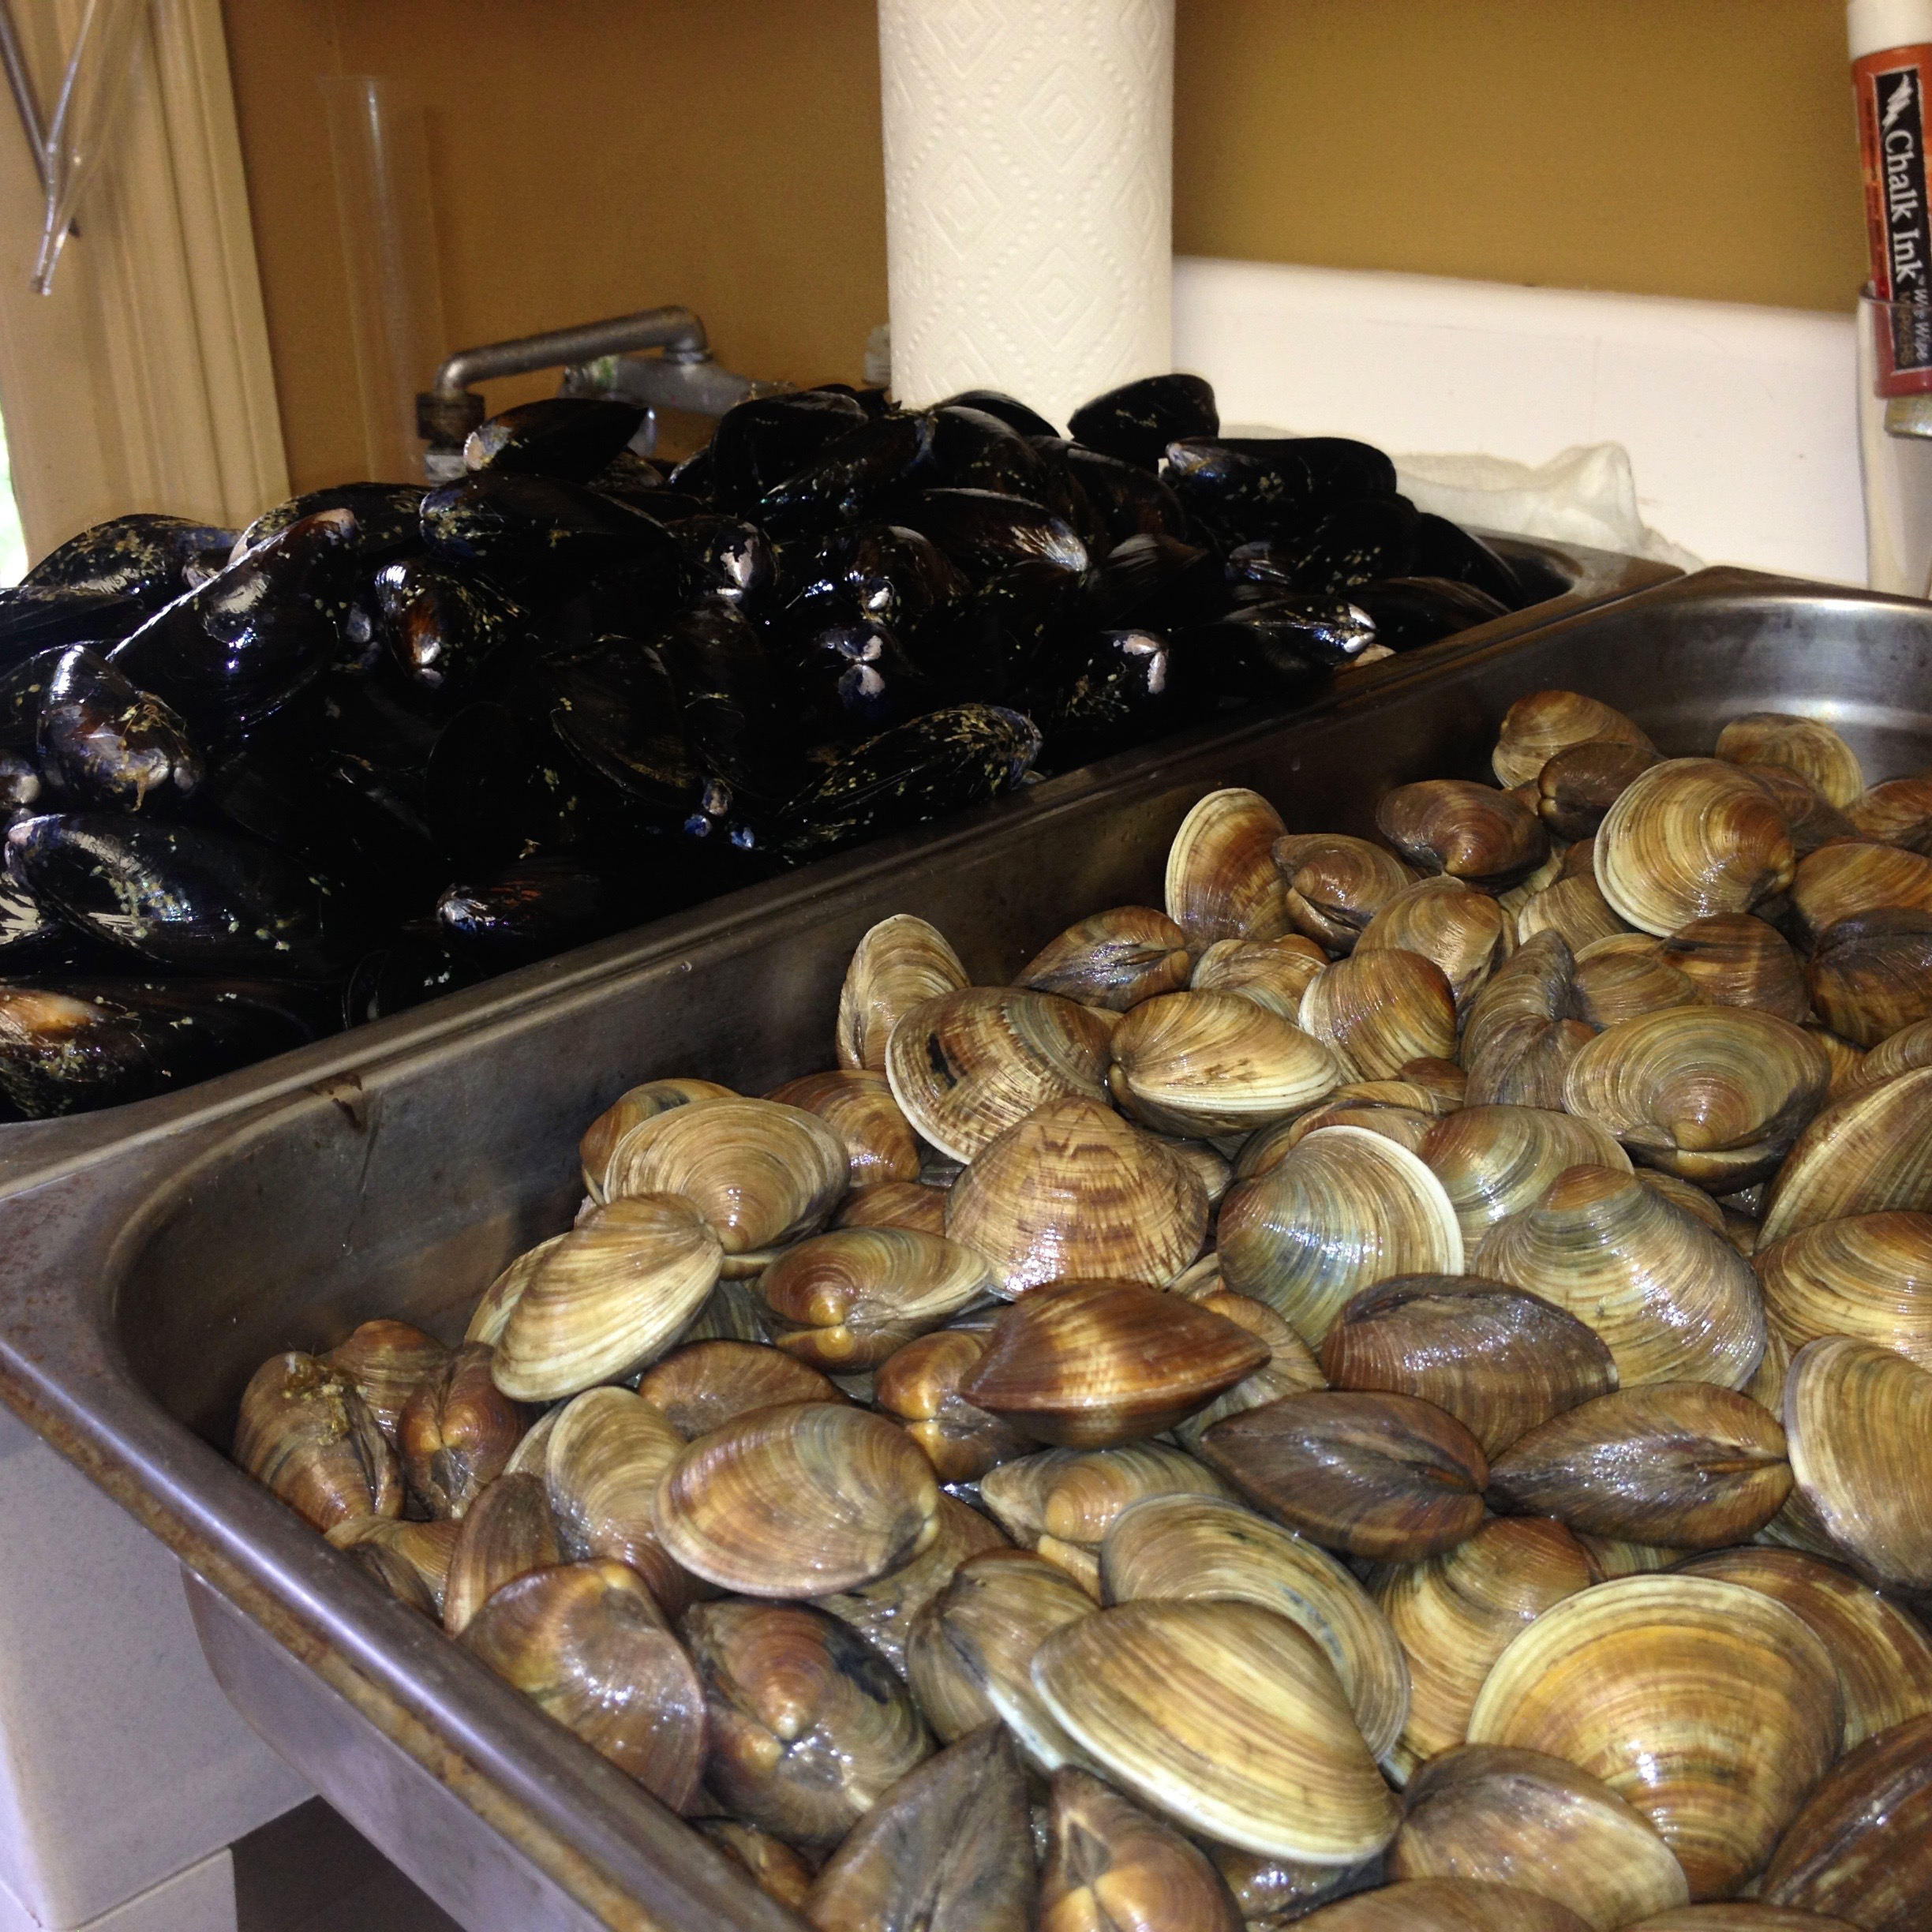 Muscardini SWCW Clambake Mussels and Clams